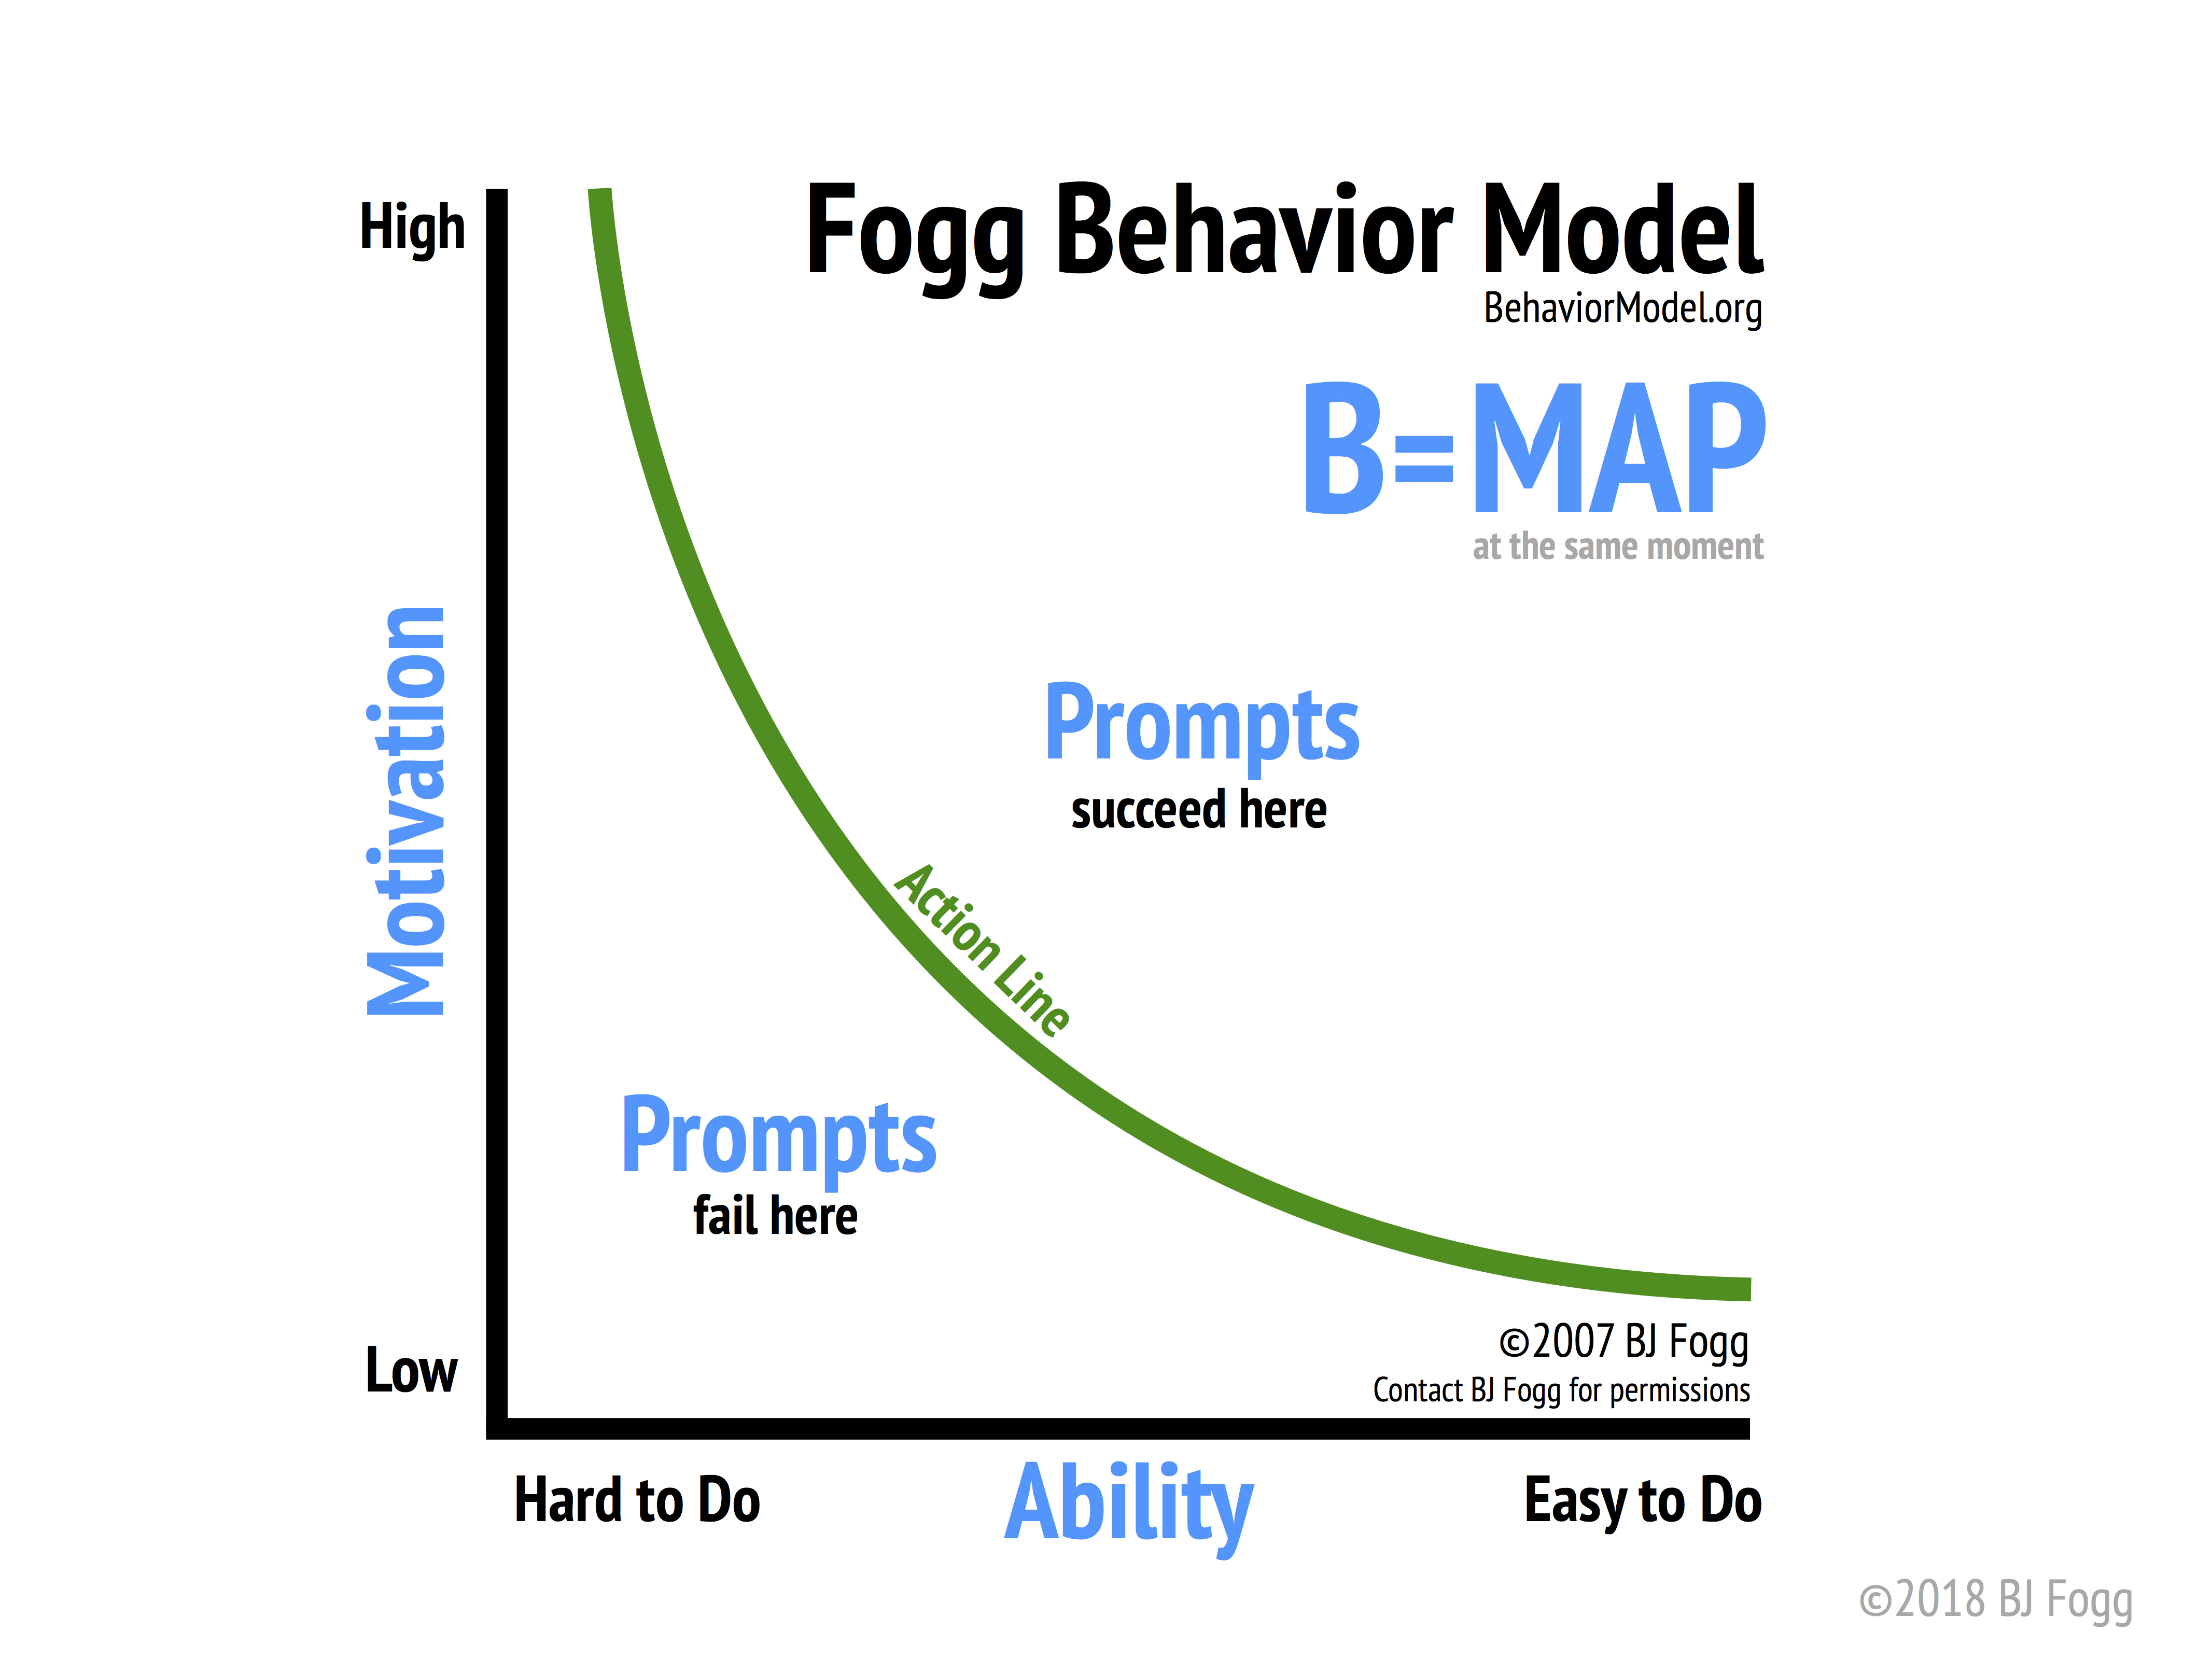 The Fogg Behavior Model shows that three elements must converge at the same moment for a behavior to occur: Motivation, Ability, and a Prompt. When a behavior does not occur, at least one of those three elements is missing.